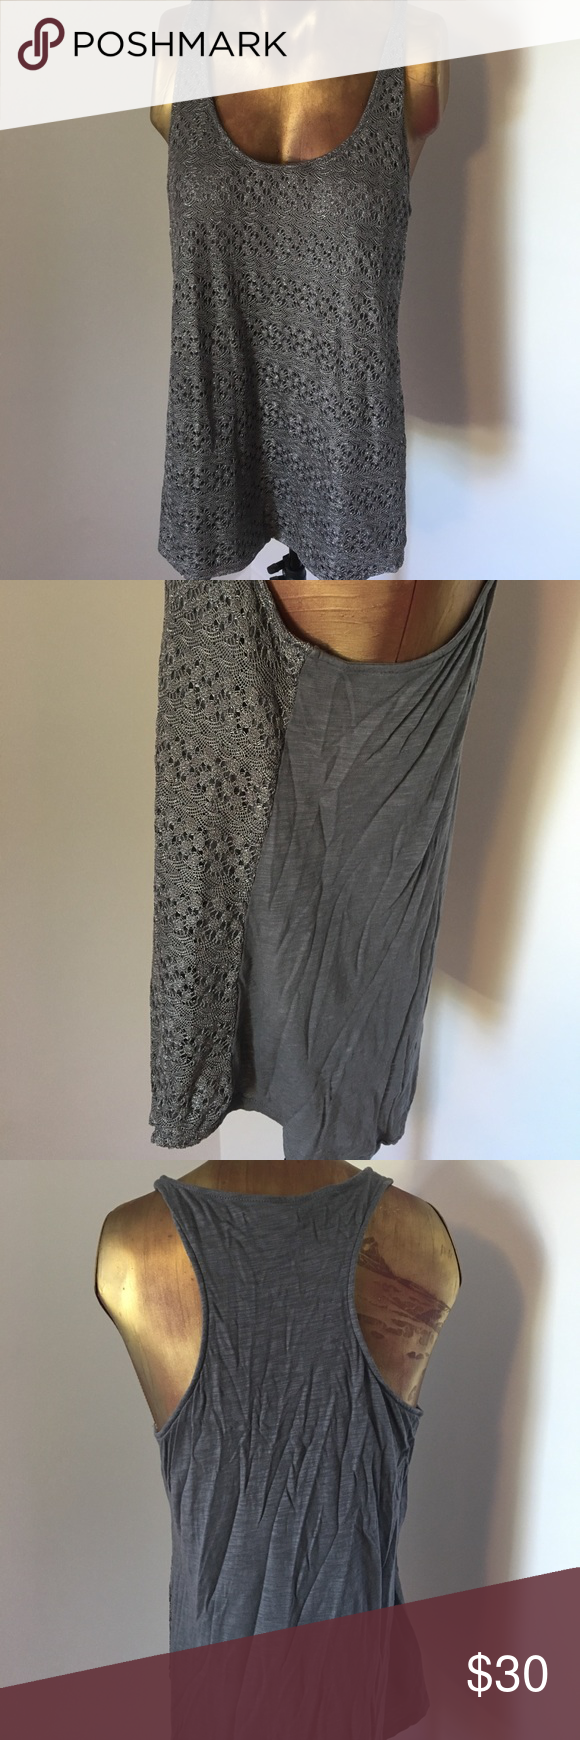 Lucky Brand Crochet front Racerback Tank Large Silvery grey colored racerback tank. Silver tone crochet overlay on the front half of the shirt. 🍀 Lucky Brand size large. Lucky Brand Tops Tank Tops